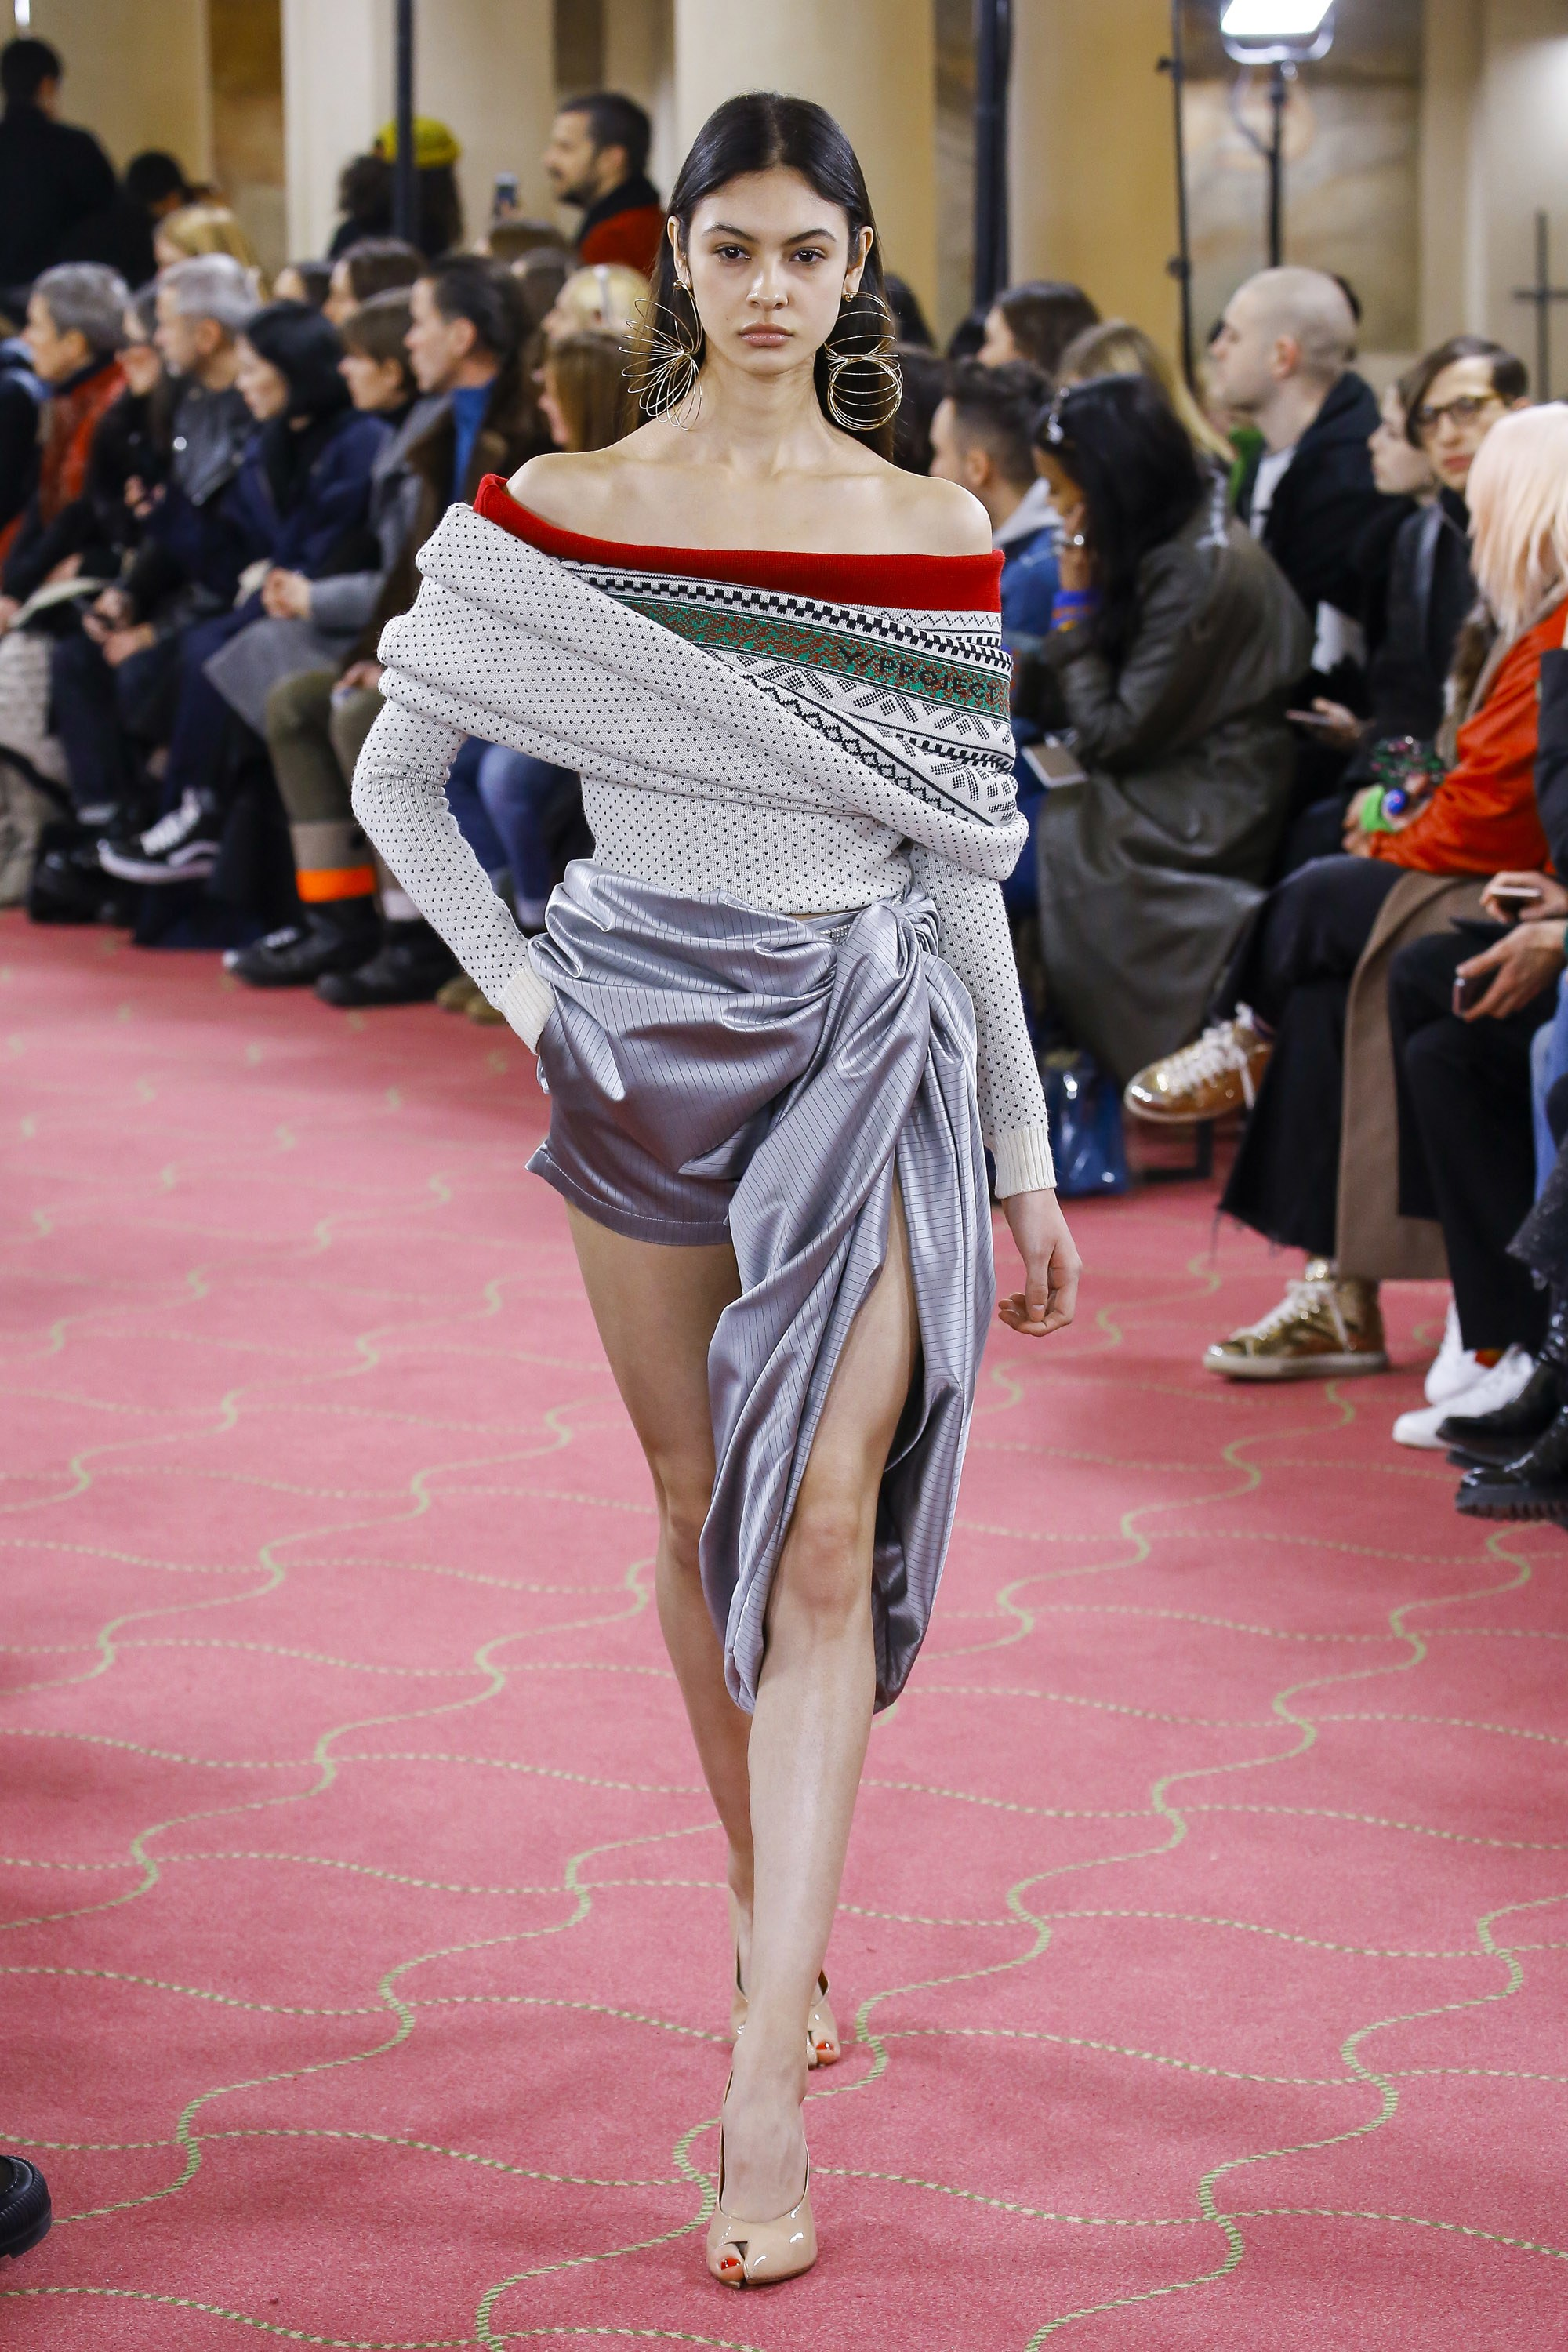 Y/PROJECT Off the Shoulder Knit, Draped Shorts, Open Toe Sandals and Slinky Earrings